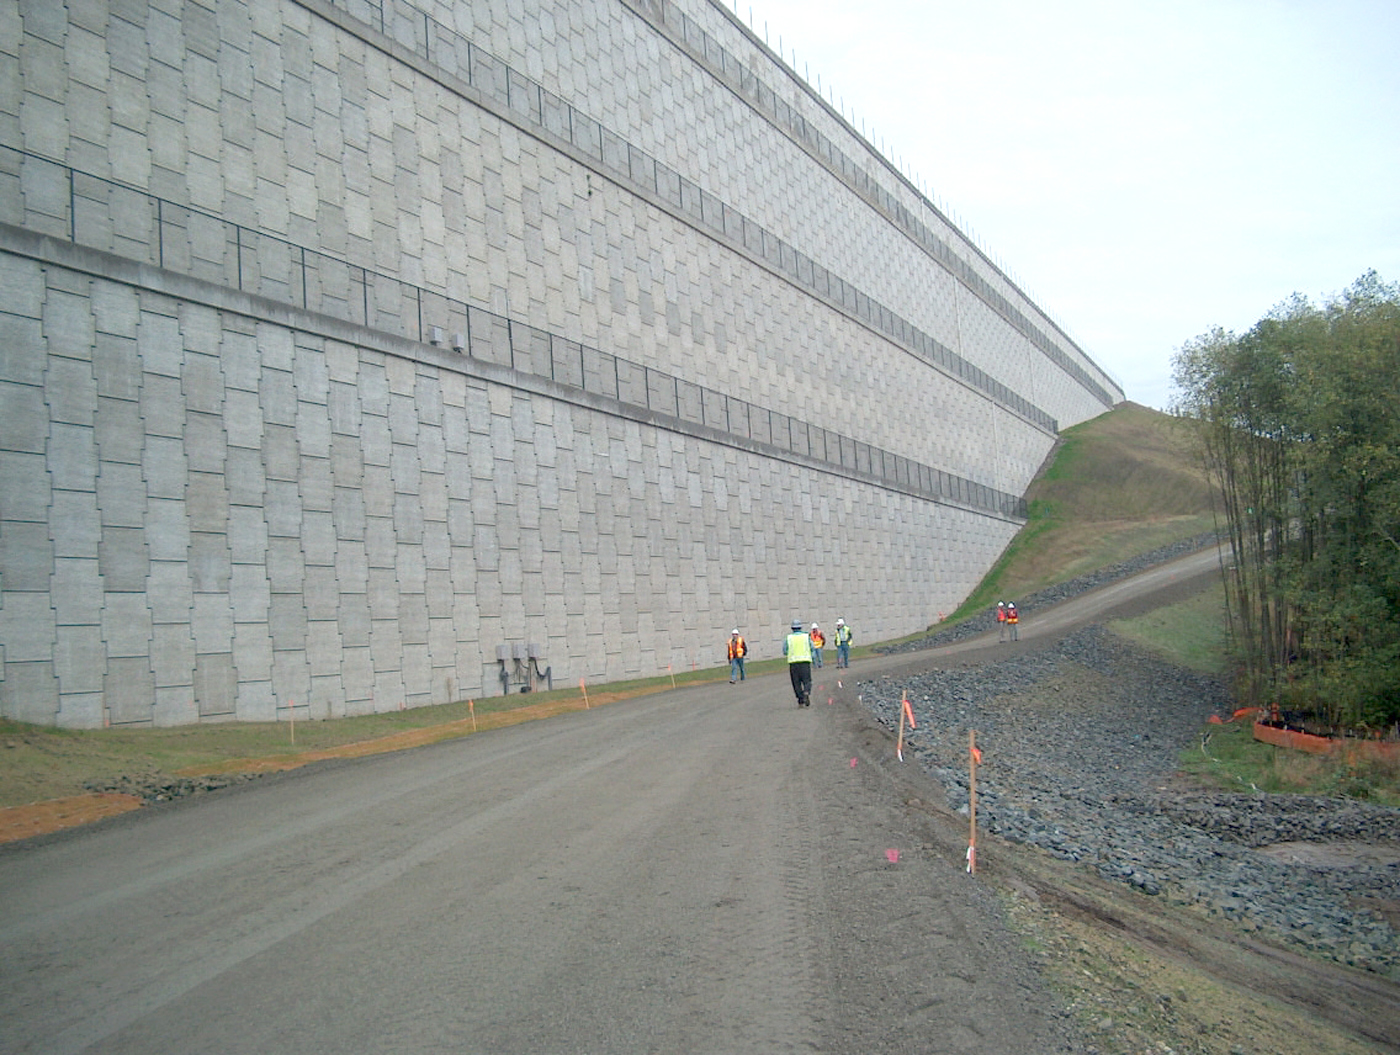 Wall Construction In Us : My plan to get elected president